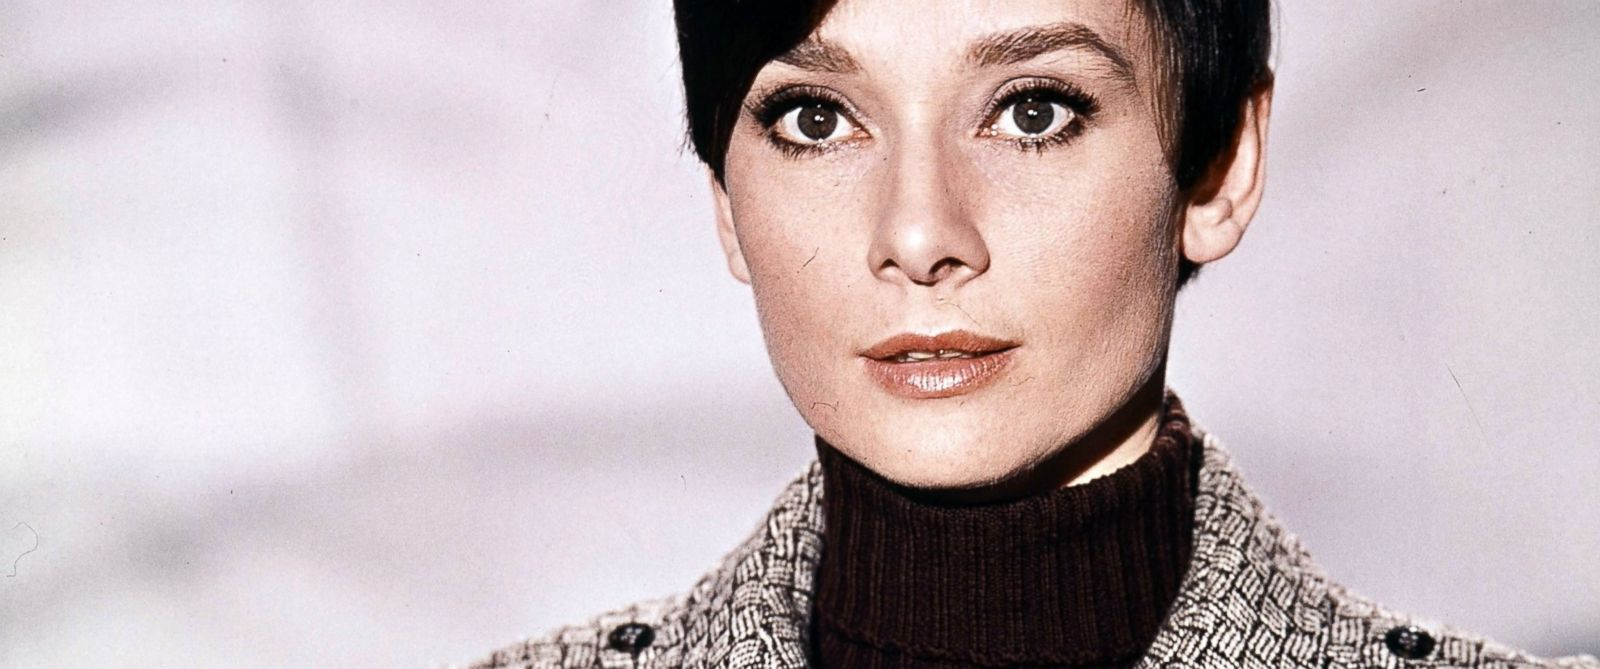 PHOTO: Audrey Hepburn in publicity portrait for the film Wait Until Dark, 1967.